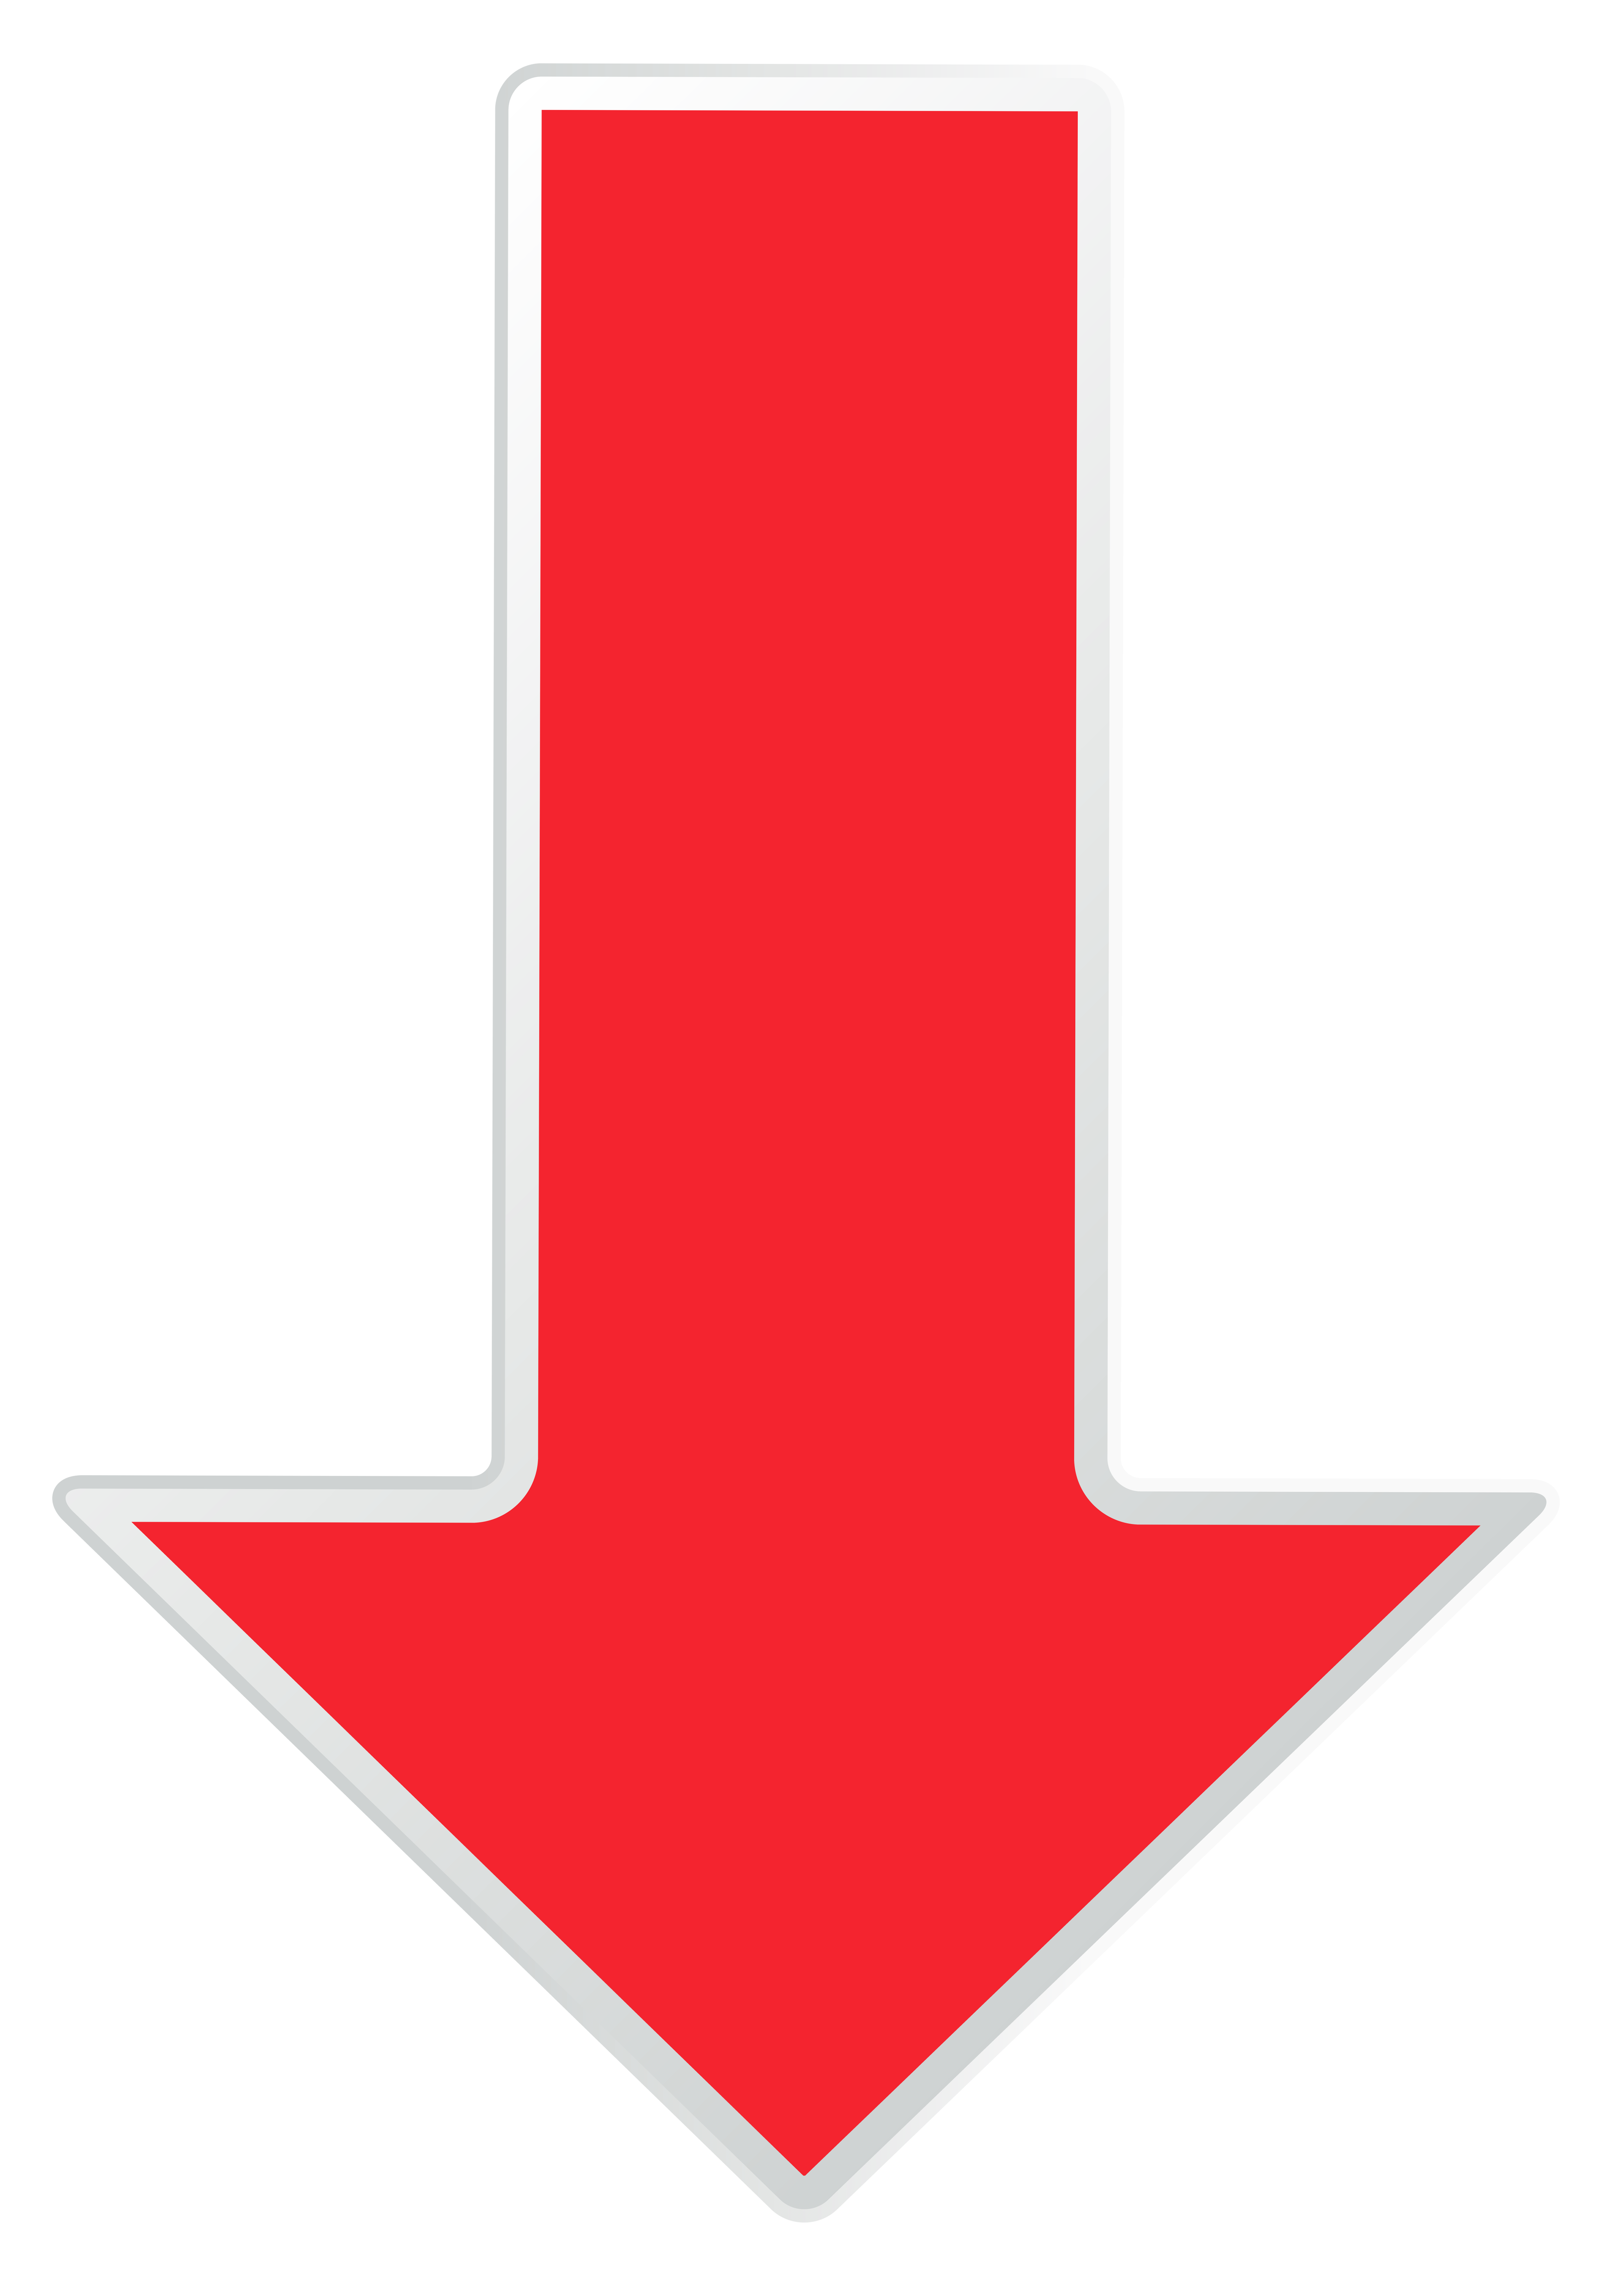 Down arrow arrow red down transparent clip art image.